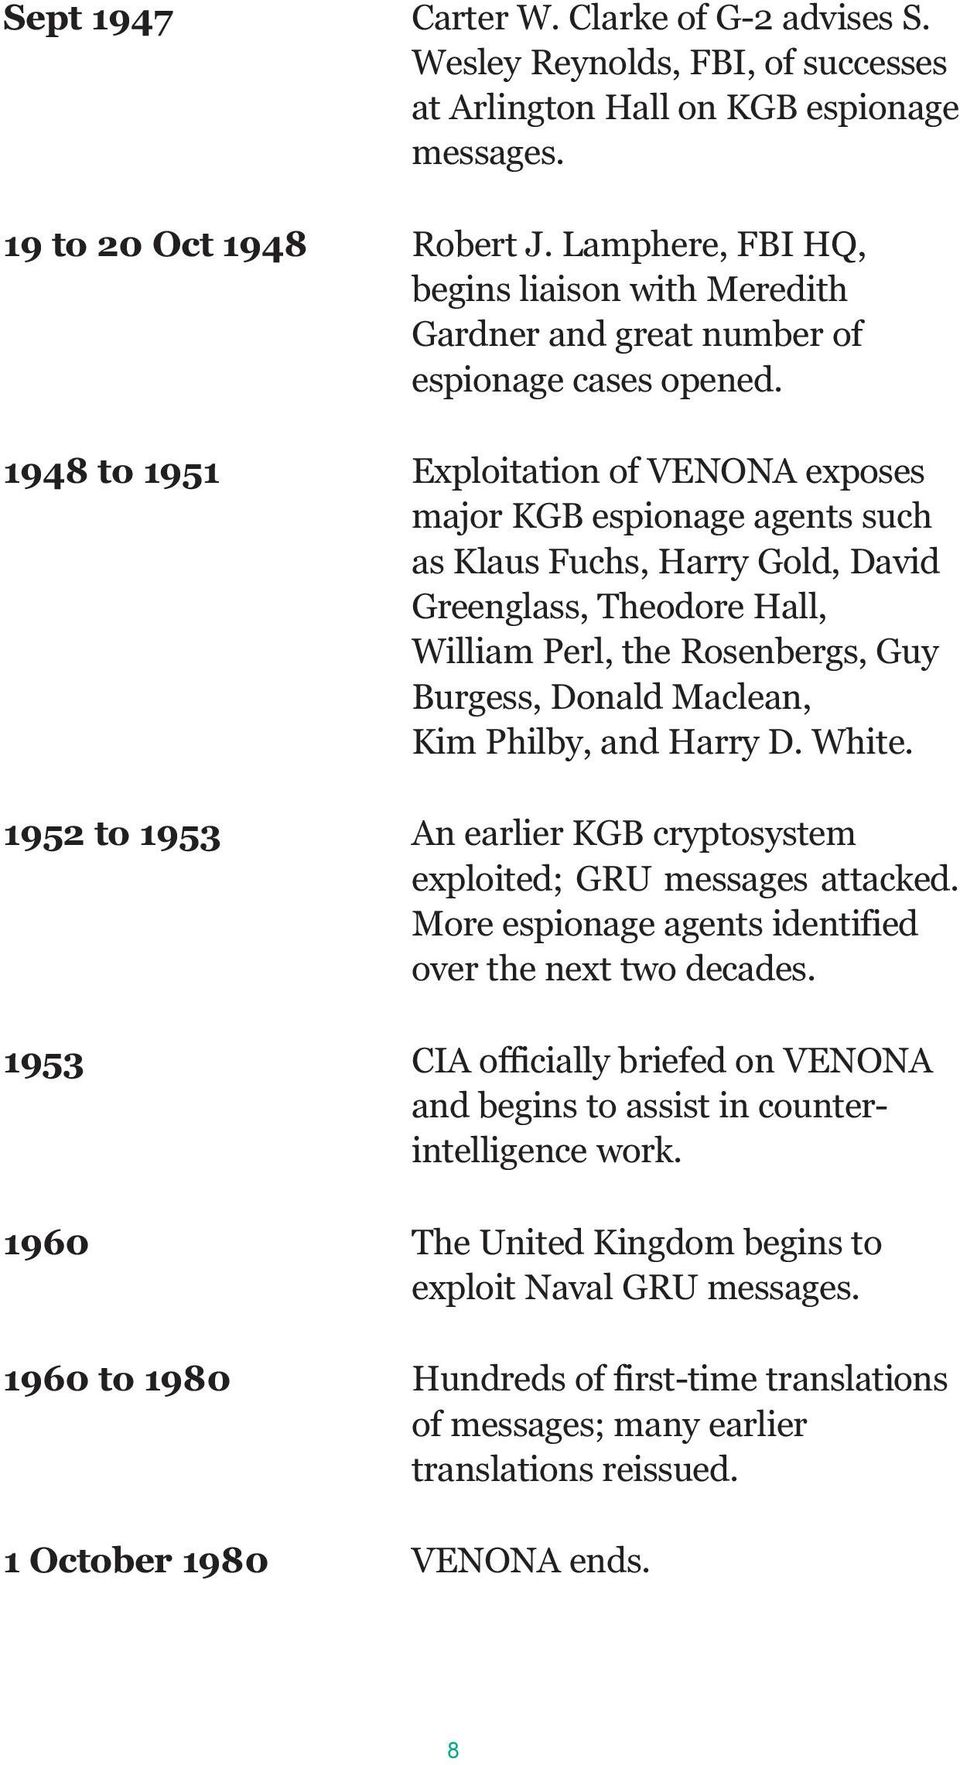 1948 to 1951 Exploitation of VENONA exposes major KGB espionage agents such as Klaus Fuchs, Harry Gold, David Greenglass, Theodore Hall, William Perl, the Rosenbergs, Guy Burgess, Donald Maclean, Kim